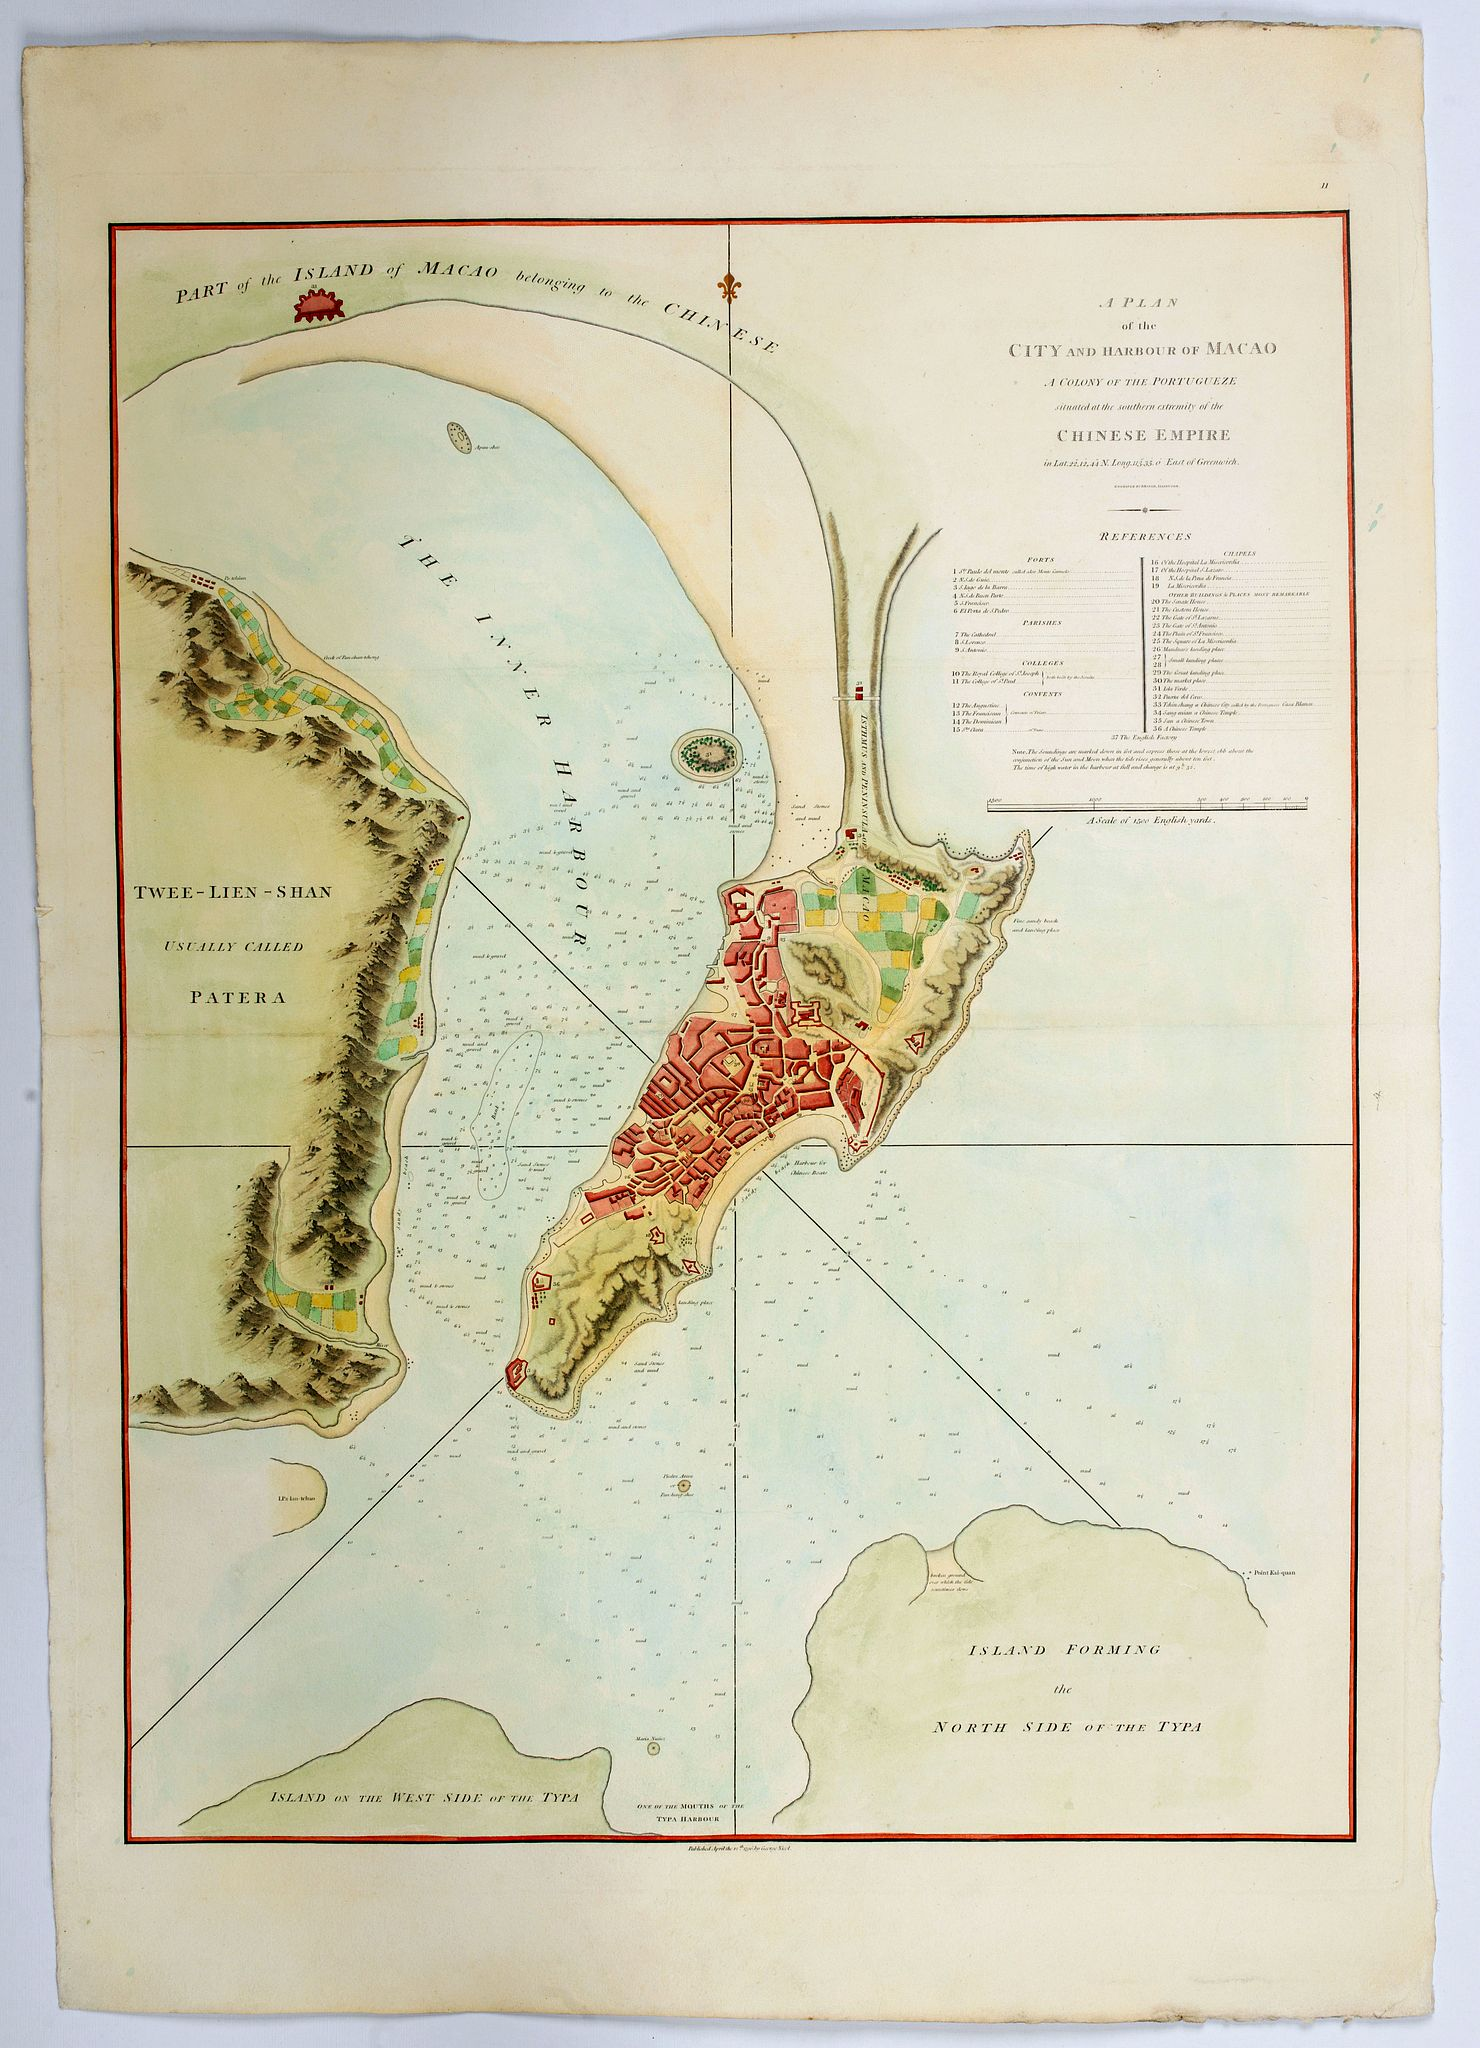 NICOL, G. - A Plan of the city and harbour of Macao : a colony of the Portugueze, situated at the southern extremity of the Chinese Empire. . .